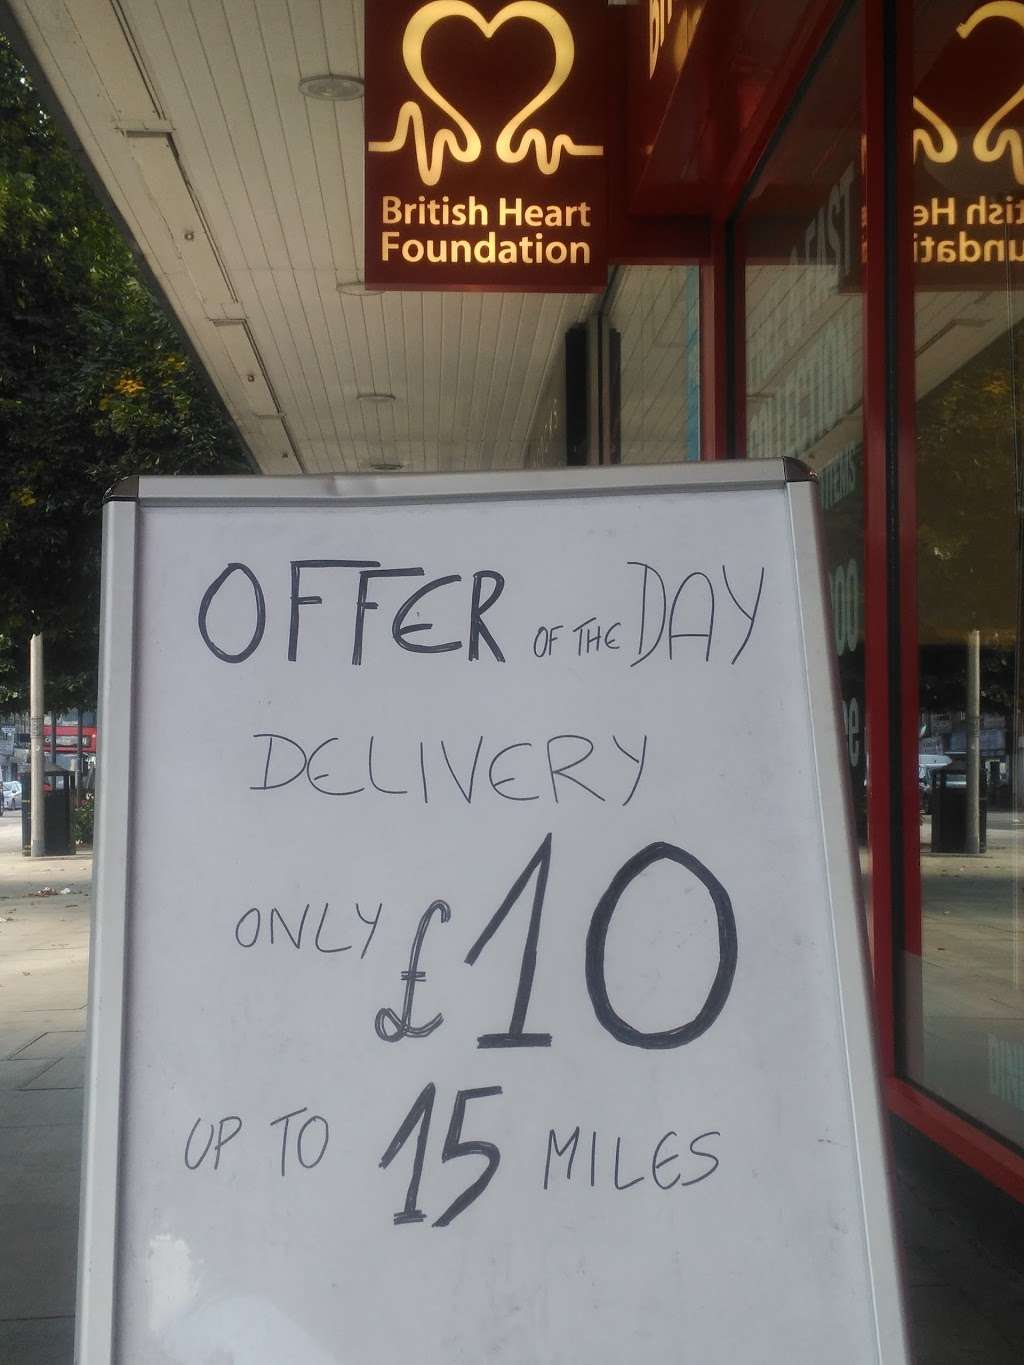 British Heart Foundation Furniture & Electrical - furniture store    Photo 8 of 9   Address: 83 Seven Sisters Rd, Holloway, London N7 6BU, UK   Phone: 020 3553 8090